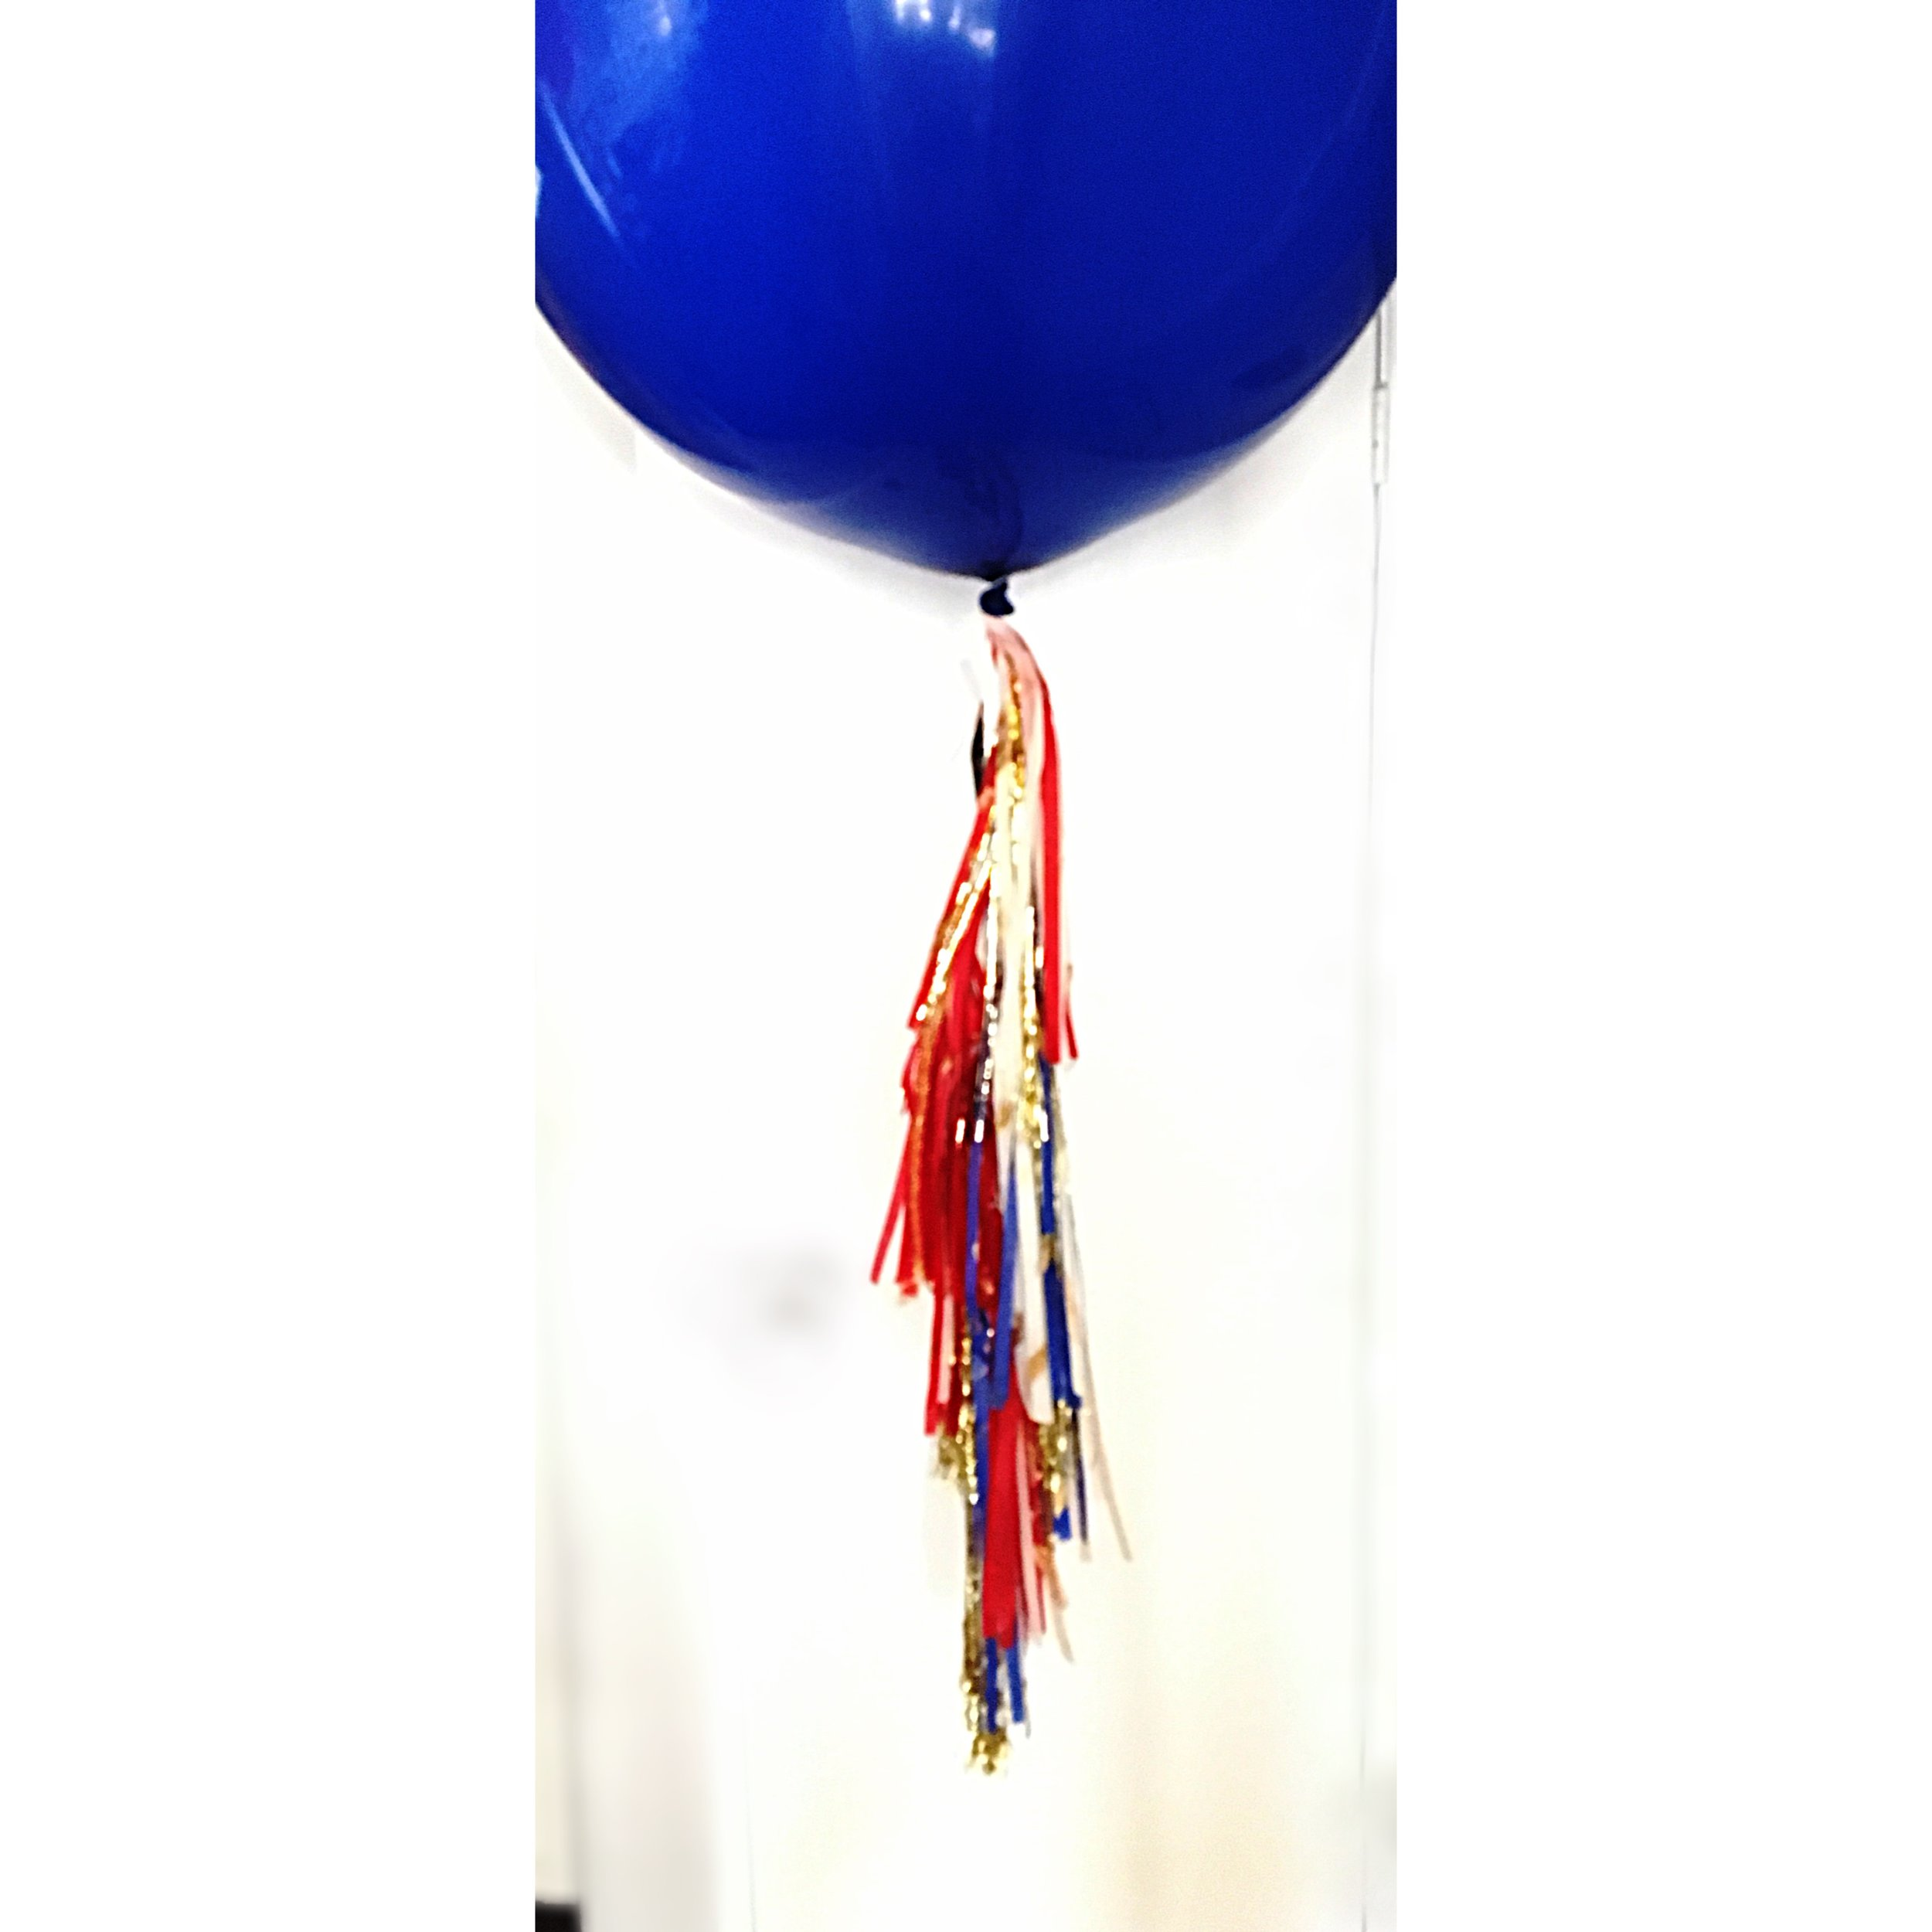 lifted-balloon-giant-royal-luxury-balloon-veterans-day-red-white-and-blue-Walnut-Creek